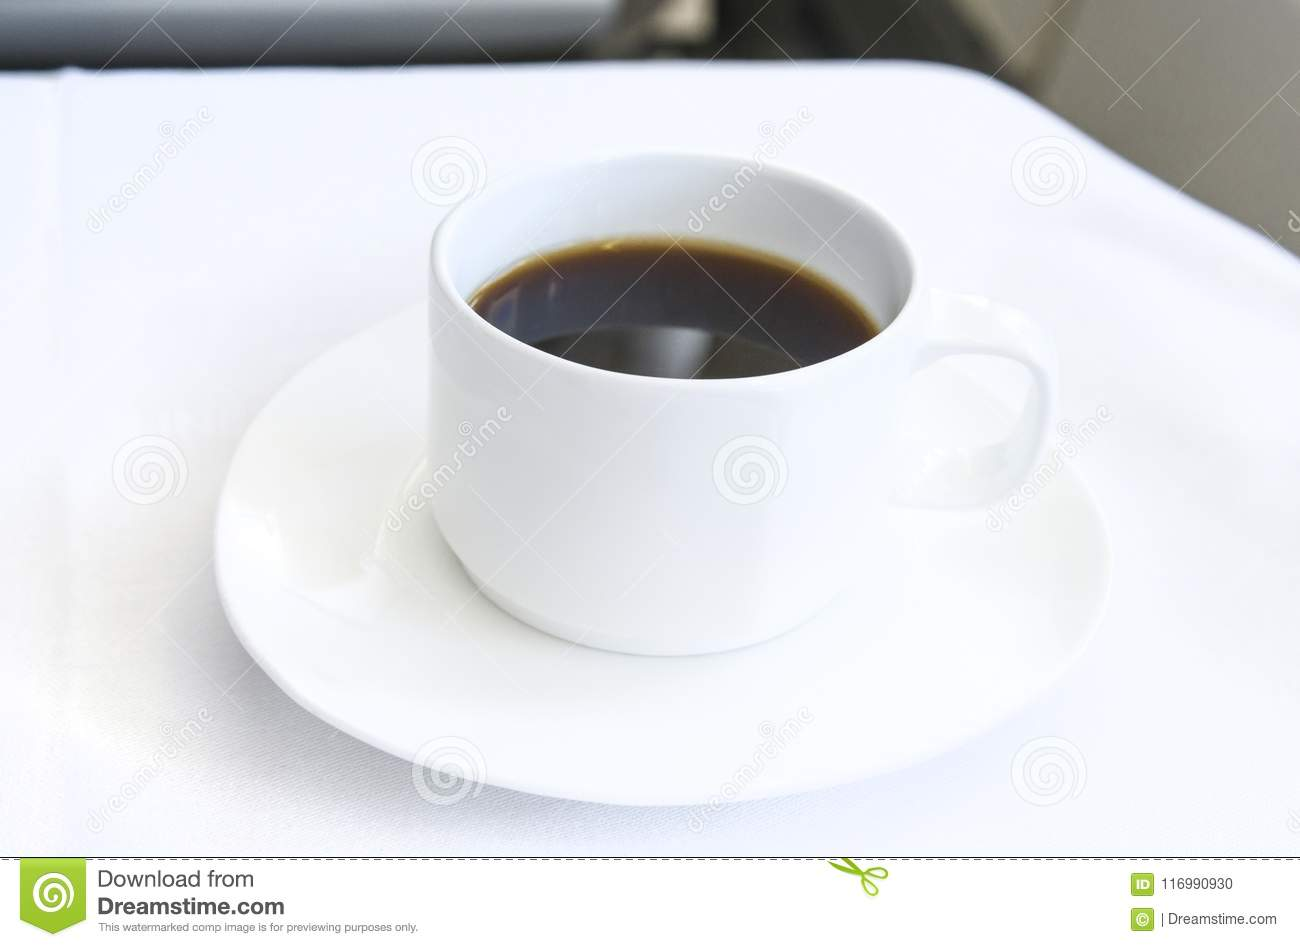 Set inflight meal appetizer coffee on a tray, on a white table